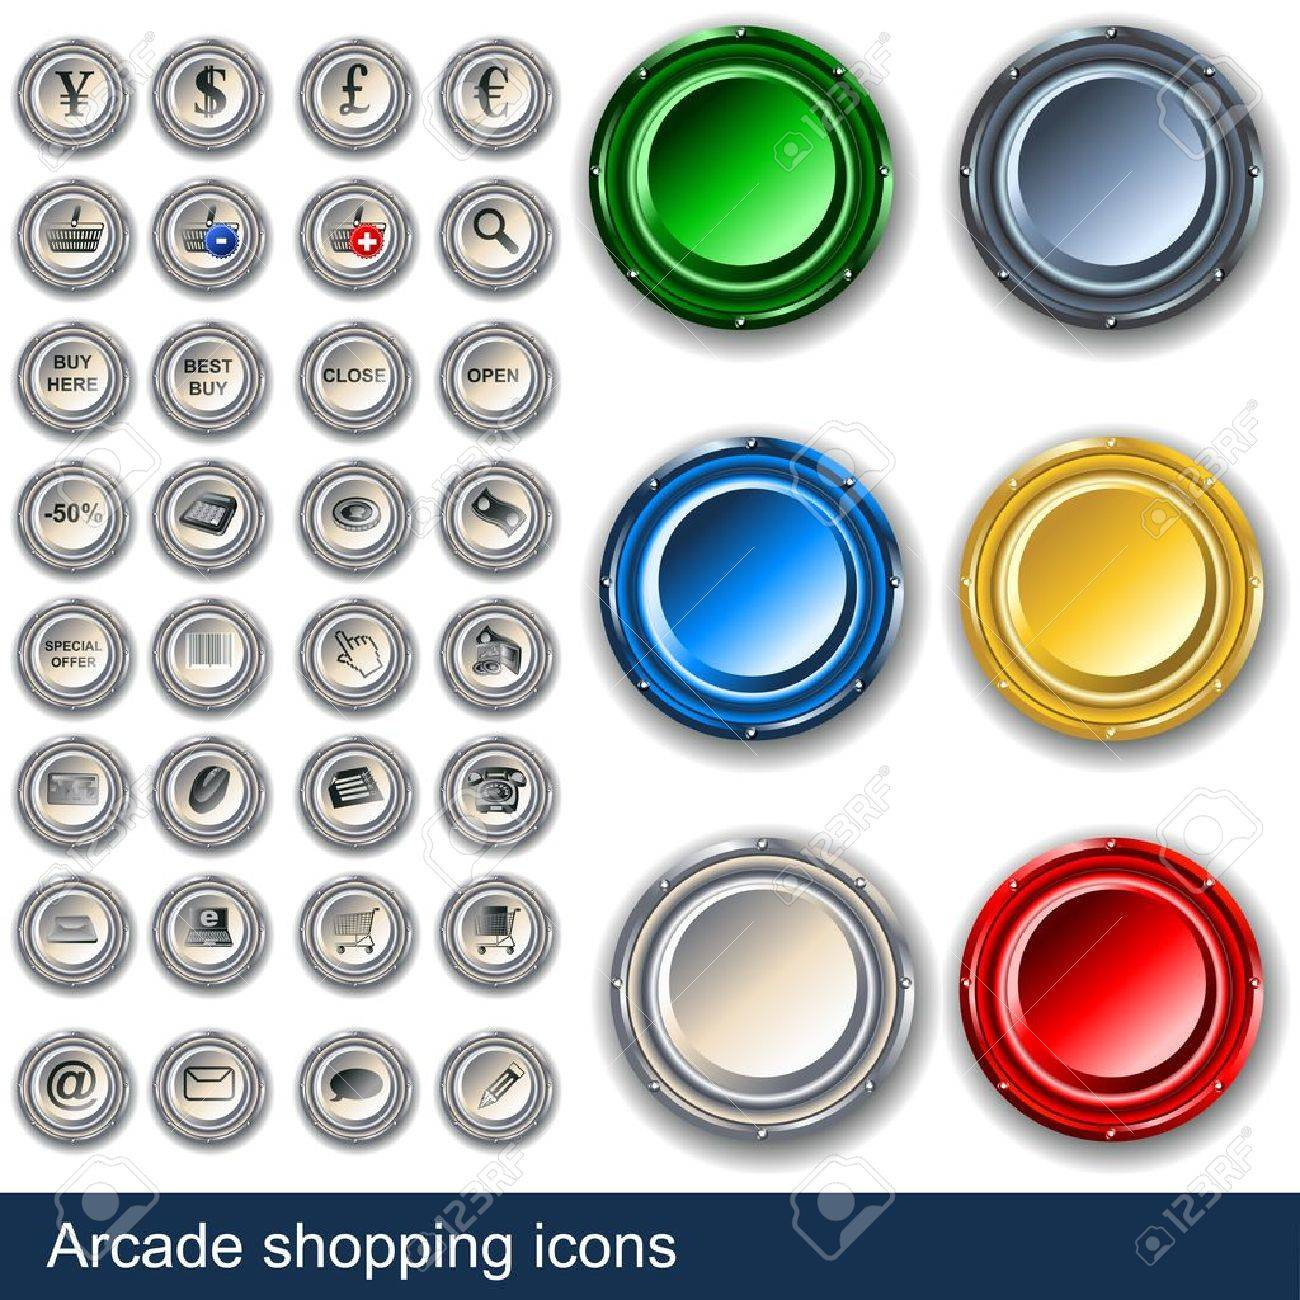 Collection of shopping icons along with arcade buttons